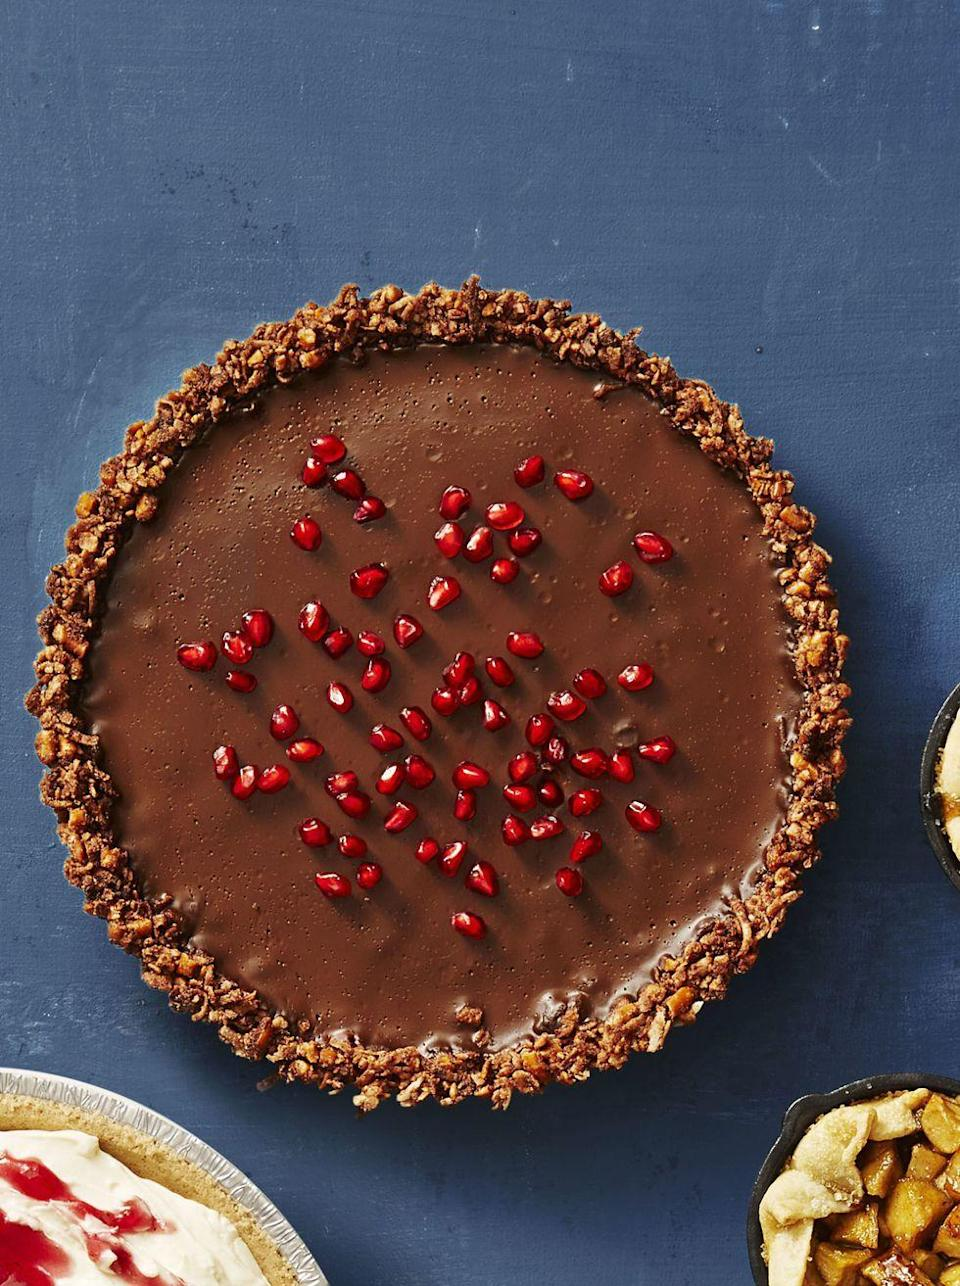 """<p>Haters gonna hate, but you can still satisfy your sweet tooth with vegan desserts (that's right, without dairy or eggs!). These <a href=""""http://www.goodhousekeeping.com/food-recipes/healthy/g807/vegan-recipes/"""" rel=""""nofollow noopener"""" target=""""_blank"""" data-ylk=""""slk:vegan recipes"""" class=""""link rapid-noclick-resp"""">vegan recipes</a> include cupcakes, <a href=""""http://www.goodhousekeeping.com/food-recipes/healthy/g5136/easy-vegan-cookie-recipes/"""" rel=""""nofollow noopener"""" target=""""_blank"""" data-ylk=""""slk:vegan cookies"""" class=""""link rapid-noclick-resp"""">vegan cookies</a> and other treats that are proof that you don't need animal products to make a show stopping dessert. The best part: These easy-to-make recipes don't include a laundry list of ingredients that are impossible to track down. In fact, many of them call for just a few staples that you probably have in your pantry right now. Got dark chocolate and a can of coconut milk? Then you've got chocolate truffles! What about a sheet of frozen puff pastry and an air fryer? Get ready to make the easiest vegan donuts ever. Plus, we rounded up tons of bright, fresh fruit desserts that definitely don't need dairy's help.</p><p>Browse through our best vegan desserts to find one (or two, or three … ) you love and you won't believe how much it tastes like the real thing. You don't even have to be vegan to enjoy these easy recipes, so you can share them with your meat-loving friends and family (and they won't even notice the difference!). Whether you're craving a bright berry sorbet (which is naturally vegan, BTW!), a rich <a href=""""https://www.goodhousekeeping.com/food-recipes/dessert/g32305125/easy-chocolate-desserts/"""" rel=""""nofollow noopener"""" target=""""_blank"""" data-ylk=""""slk:chocolate dessert"""" class=""""link rapid-noclick-resp"""">chocolate dessert</a> or ooey gooey vegan chocolate chip cookies, you will definitely find something that'll make your mouth water. Happy (vegan) baking! </p>"""